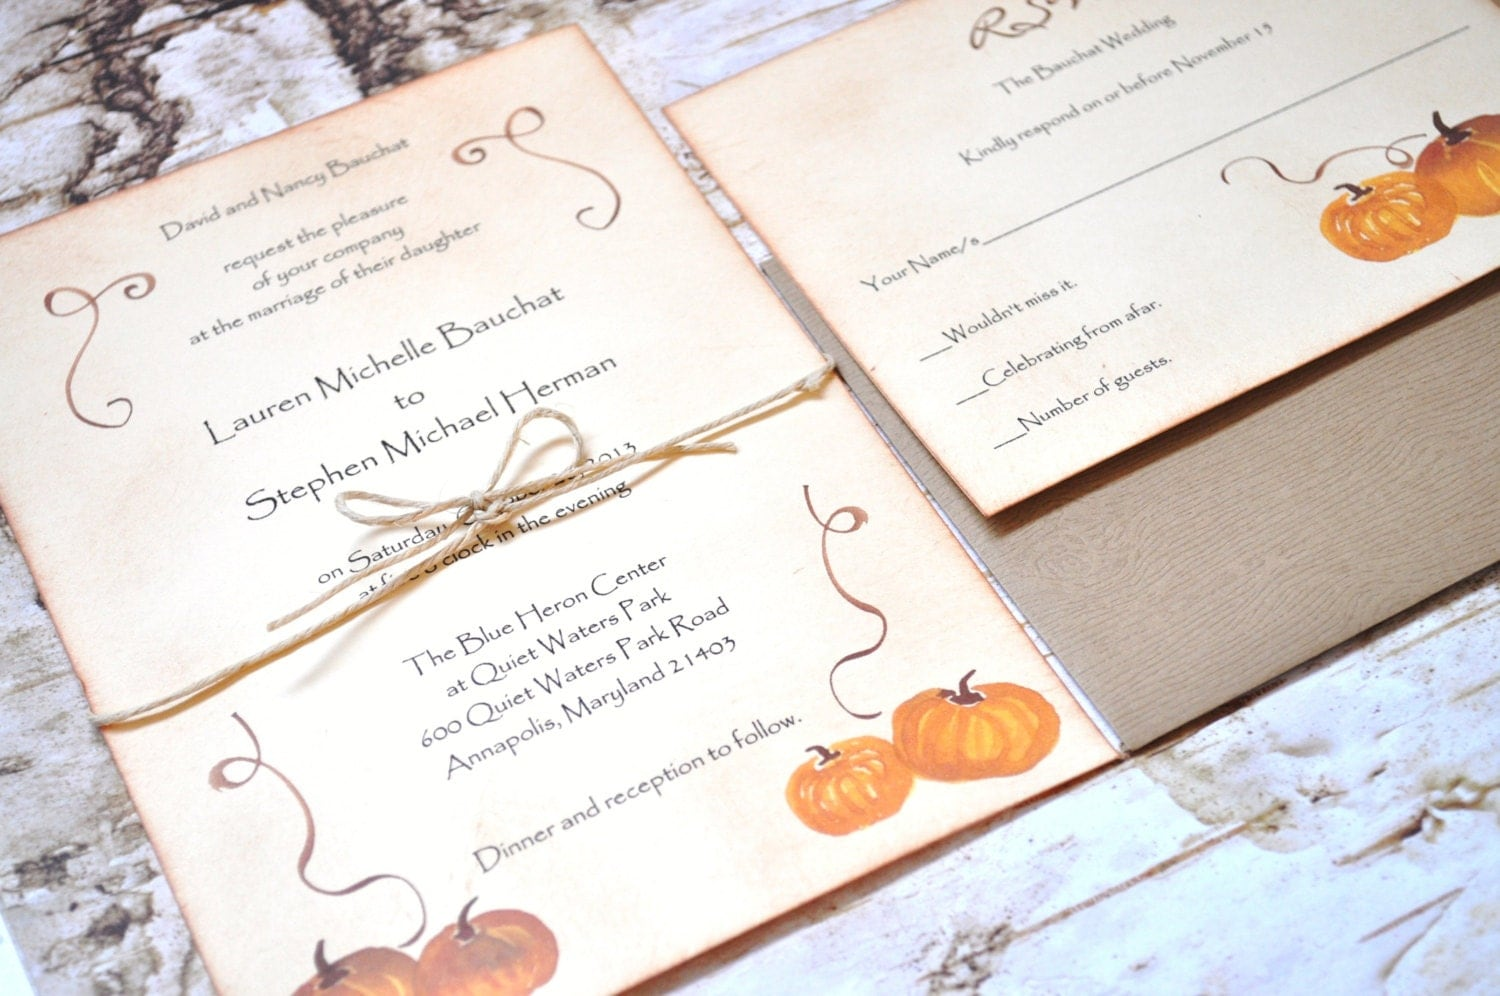 Pumpkin wedding invitations rustic wedding by alittlemorerosie for Fall wedding invitations with pumpkins